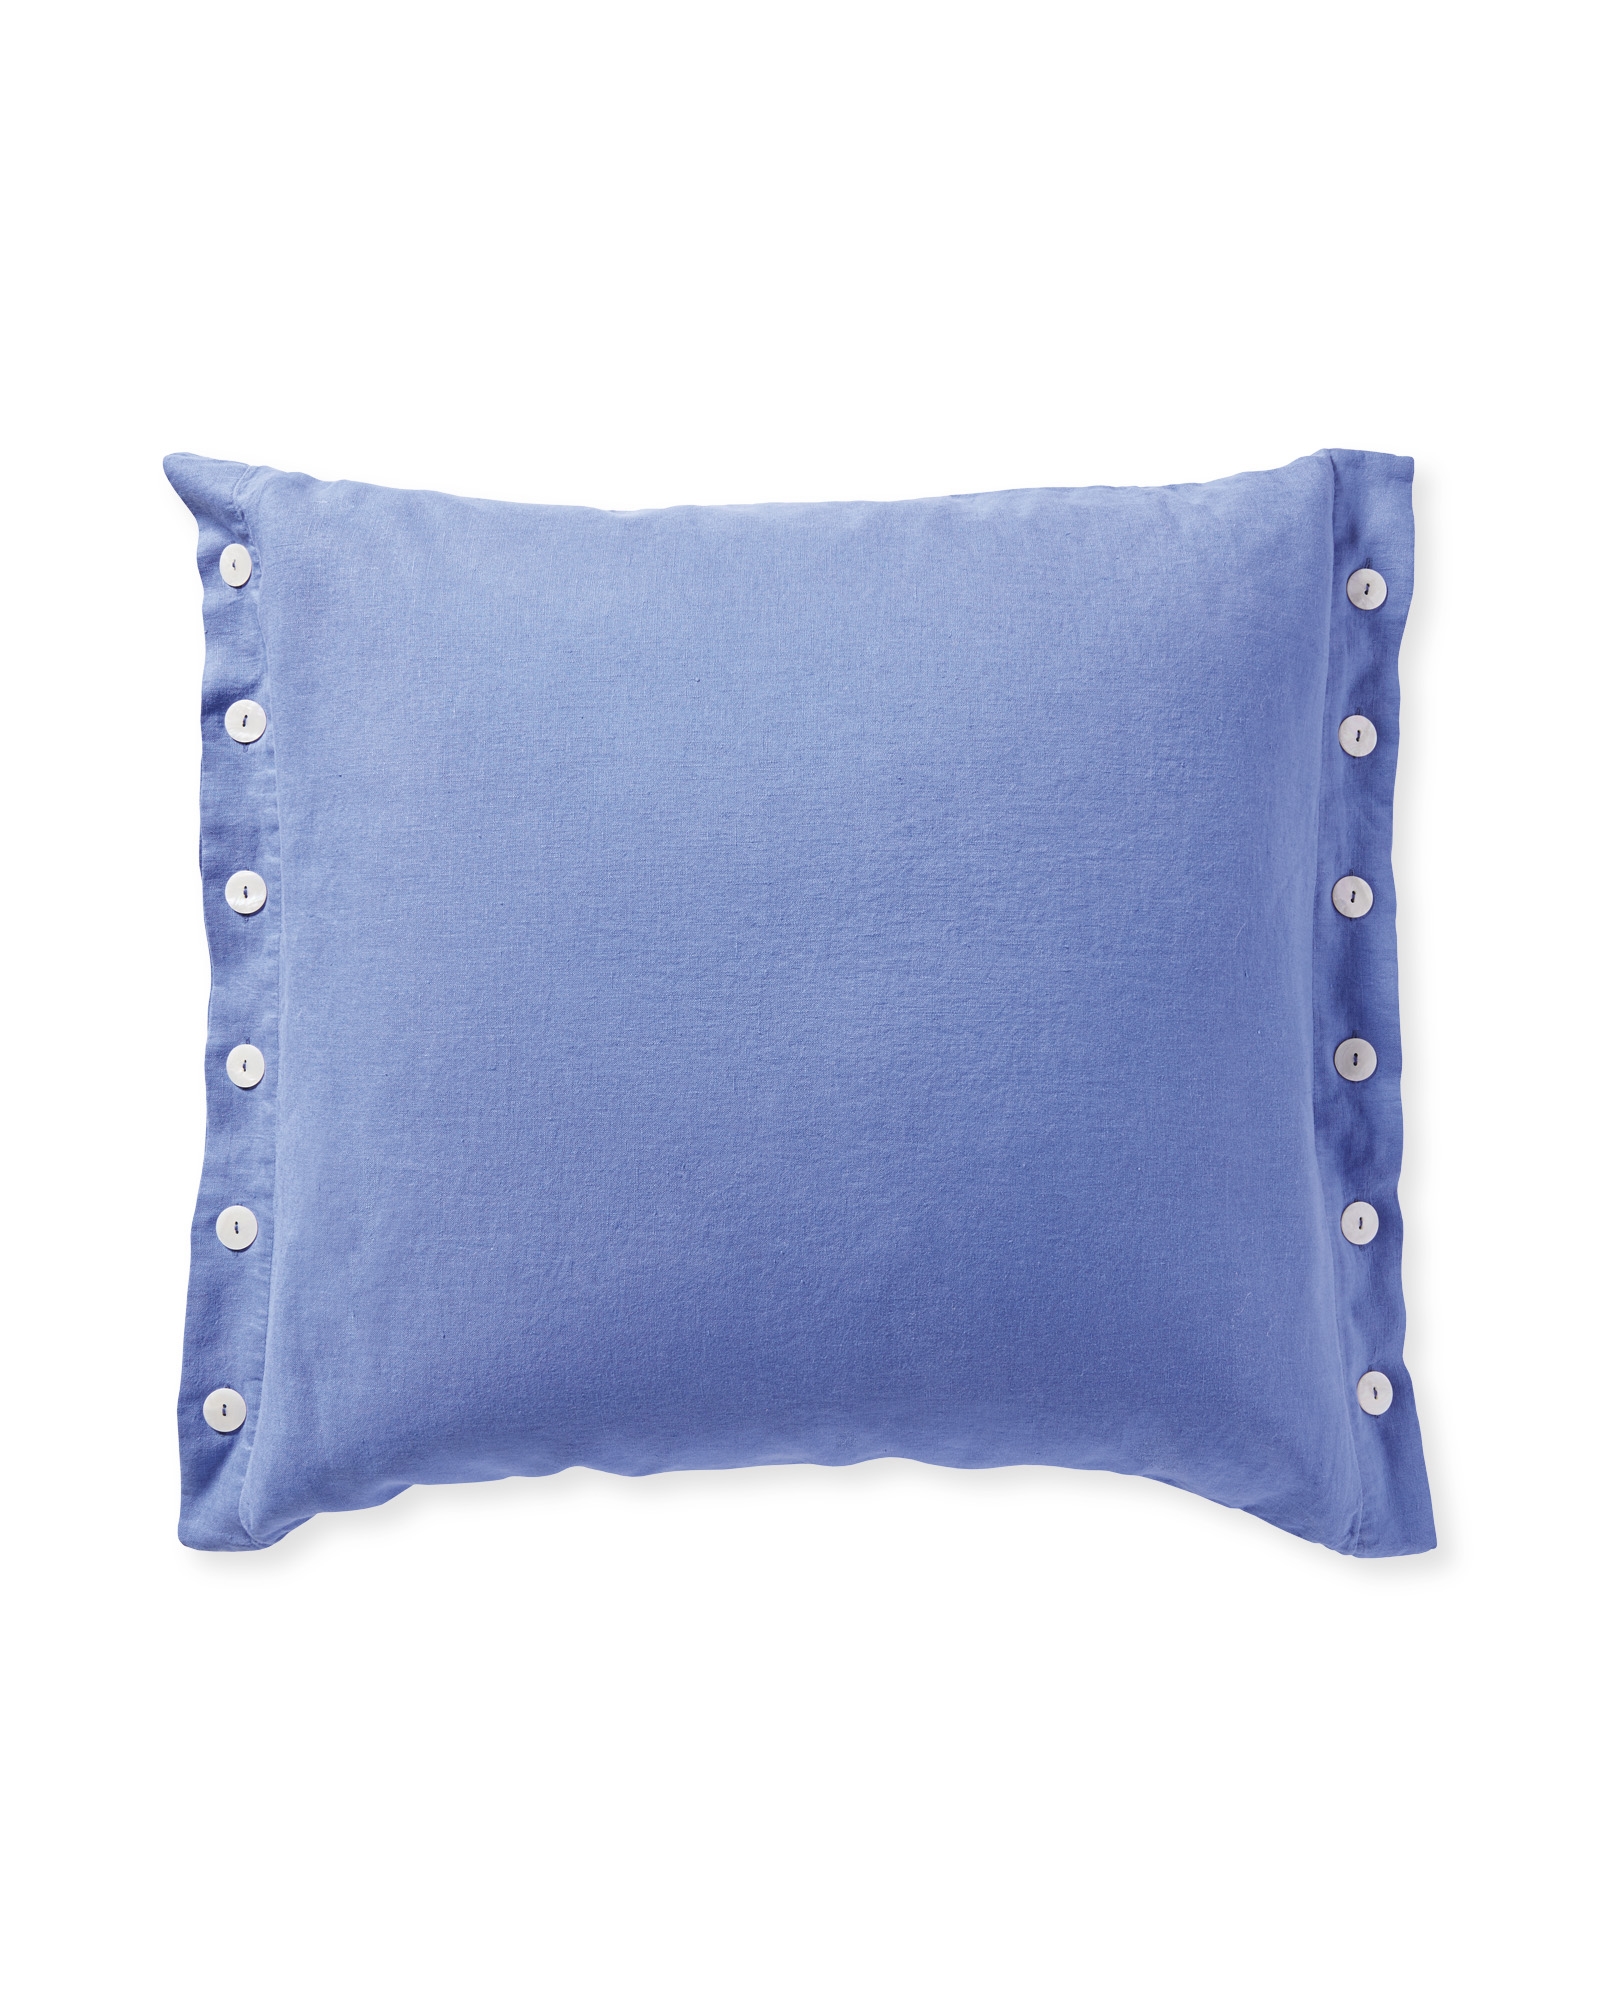 Boothbay Pillow Cover, French Blue